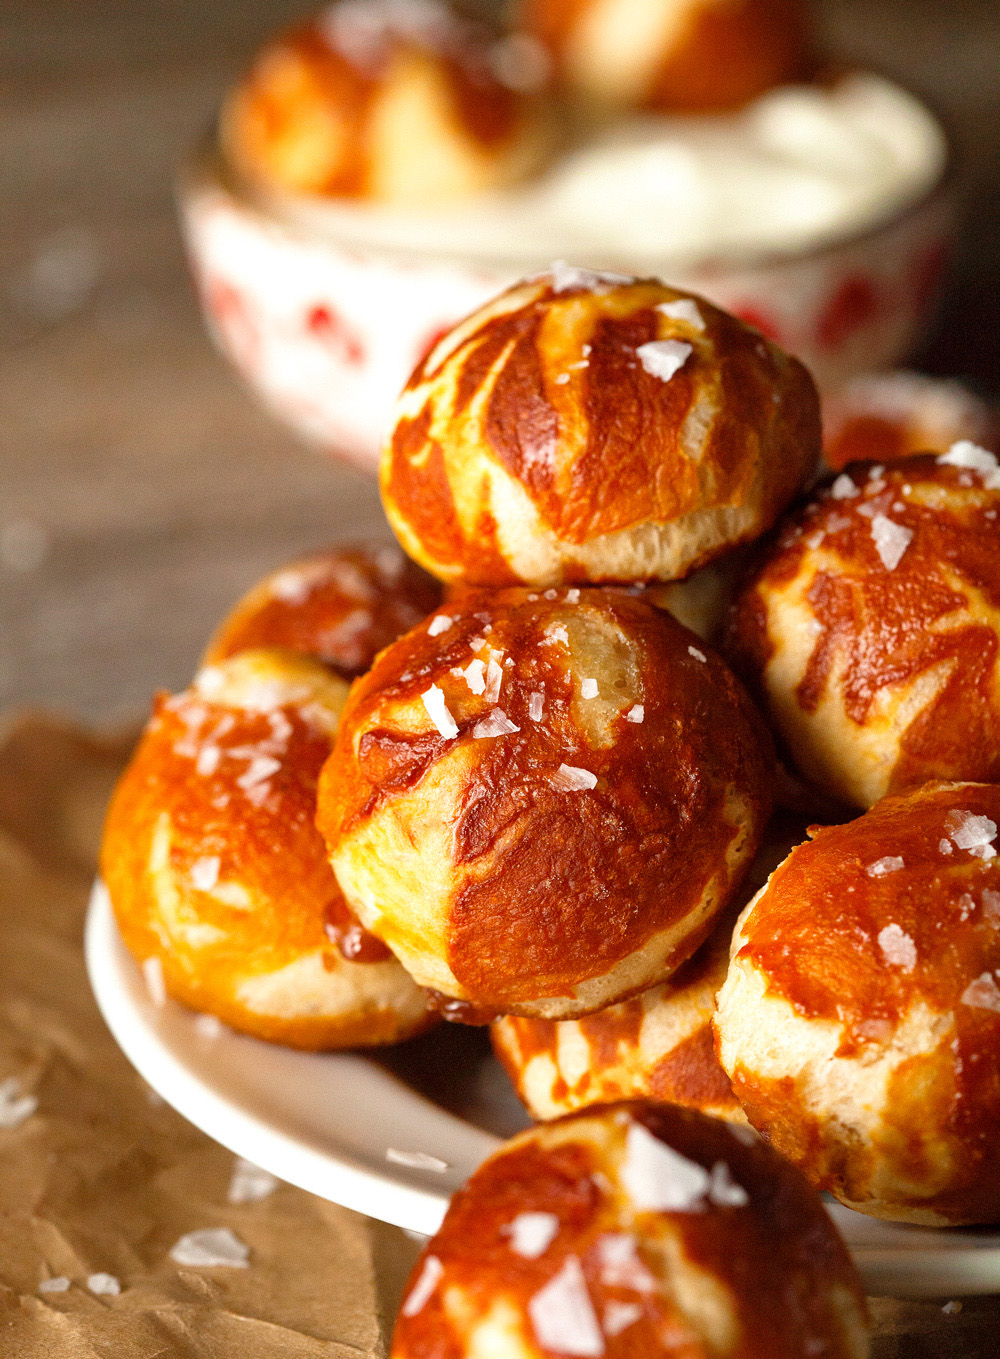 caramel-infused-pretzel-bites-with-cream-cheese-dipping-sauce